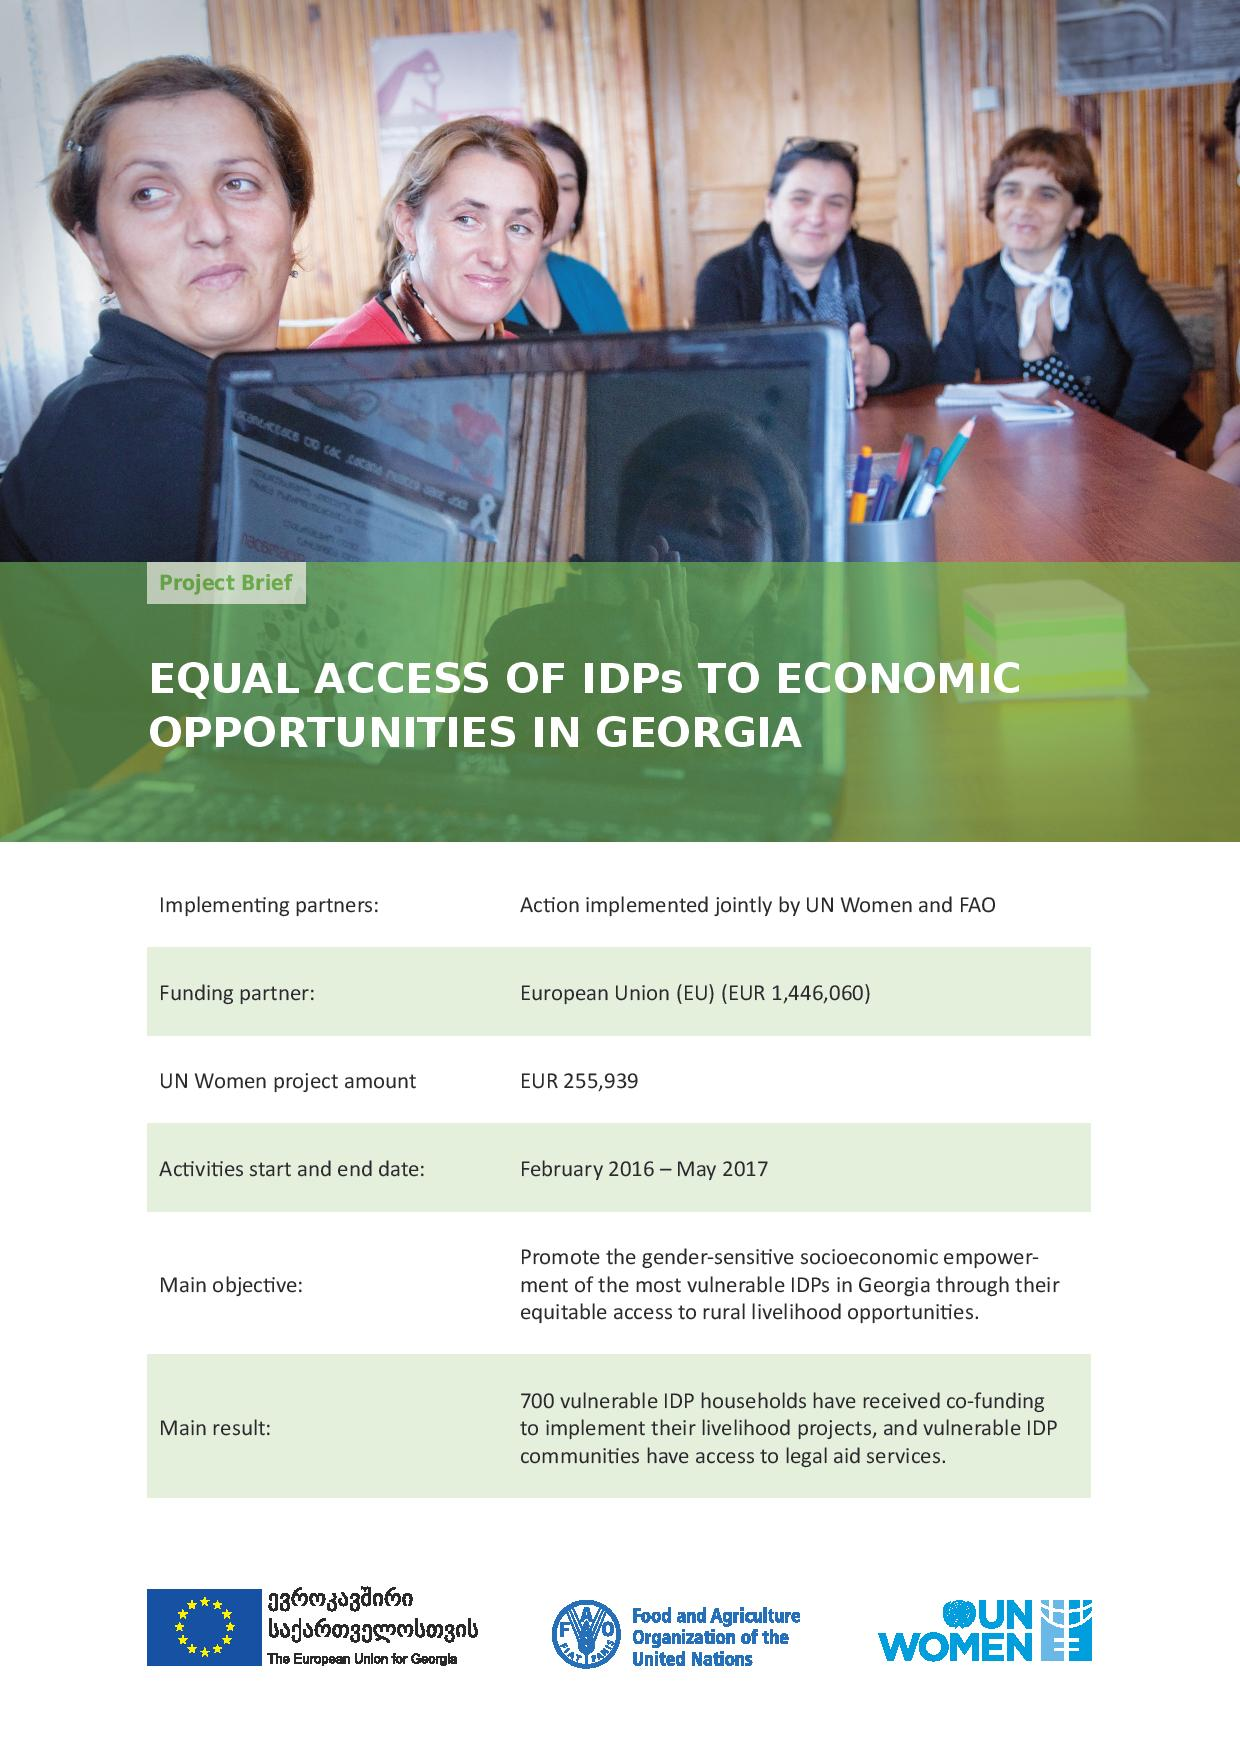 Equal Access of IDPs to Economic Opportunities in Georgia